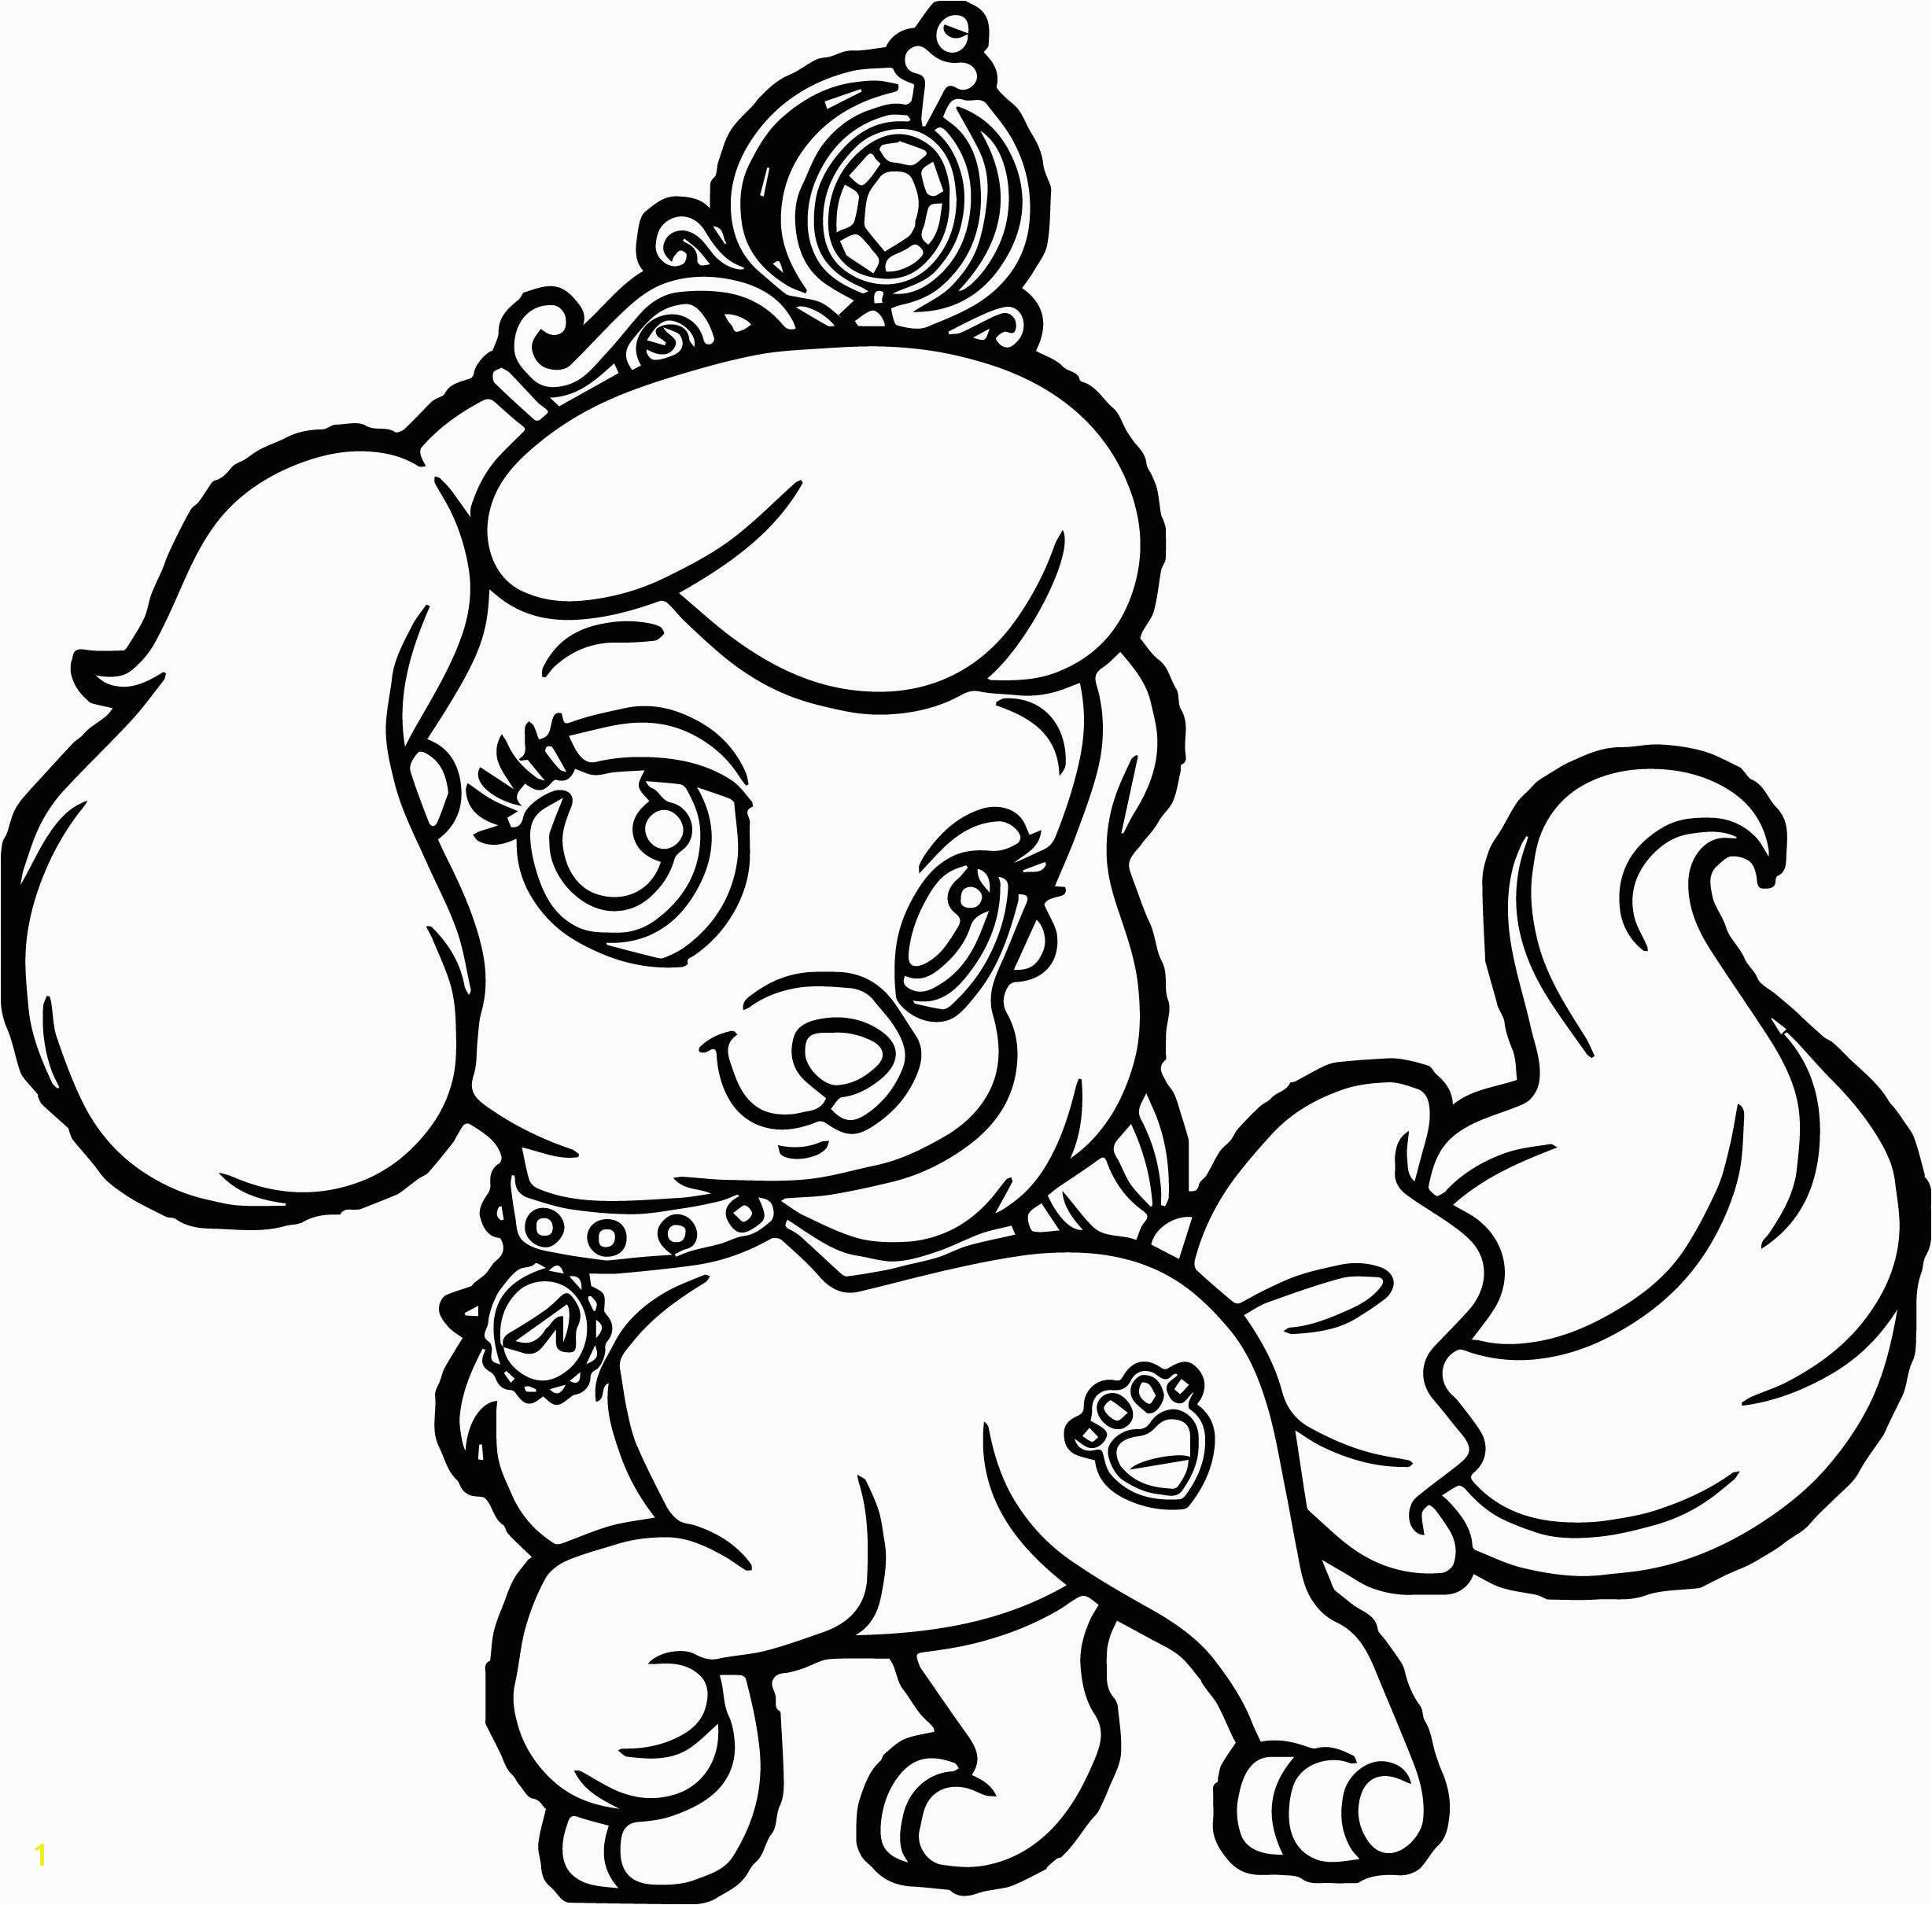 Dog Man Unleashed Coloring Pages Dog Man Unleashed Coloring Pages Lovely Dog Coloring Pages for Girls